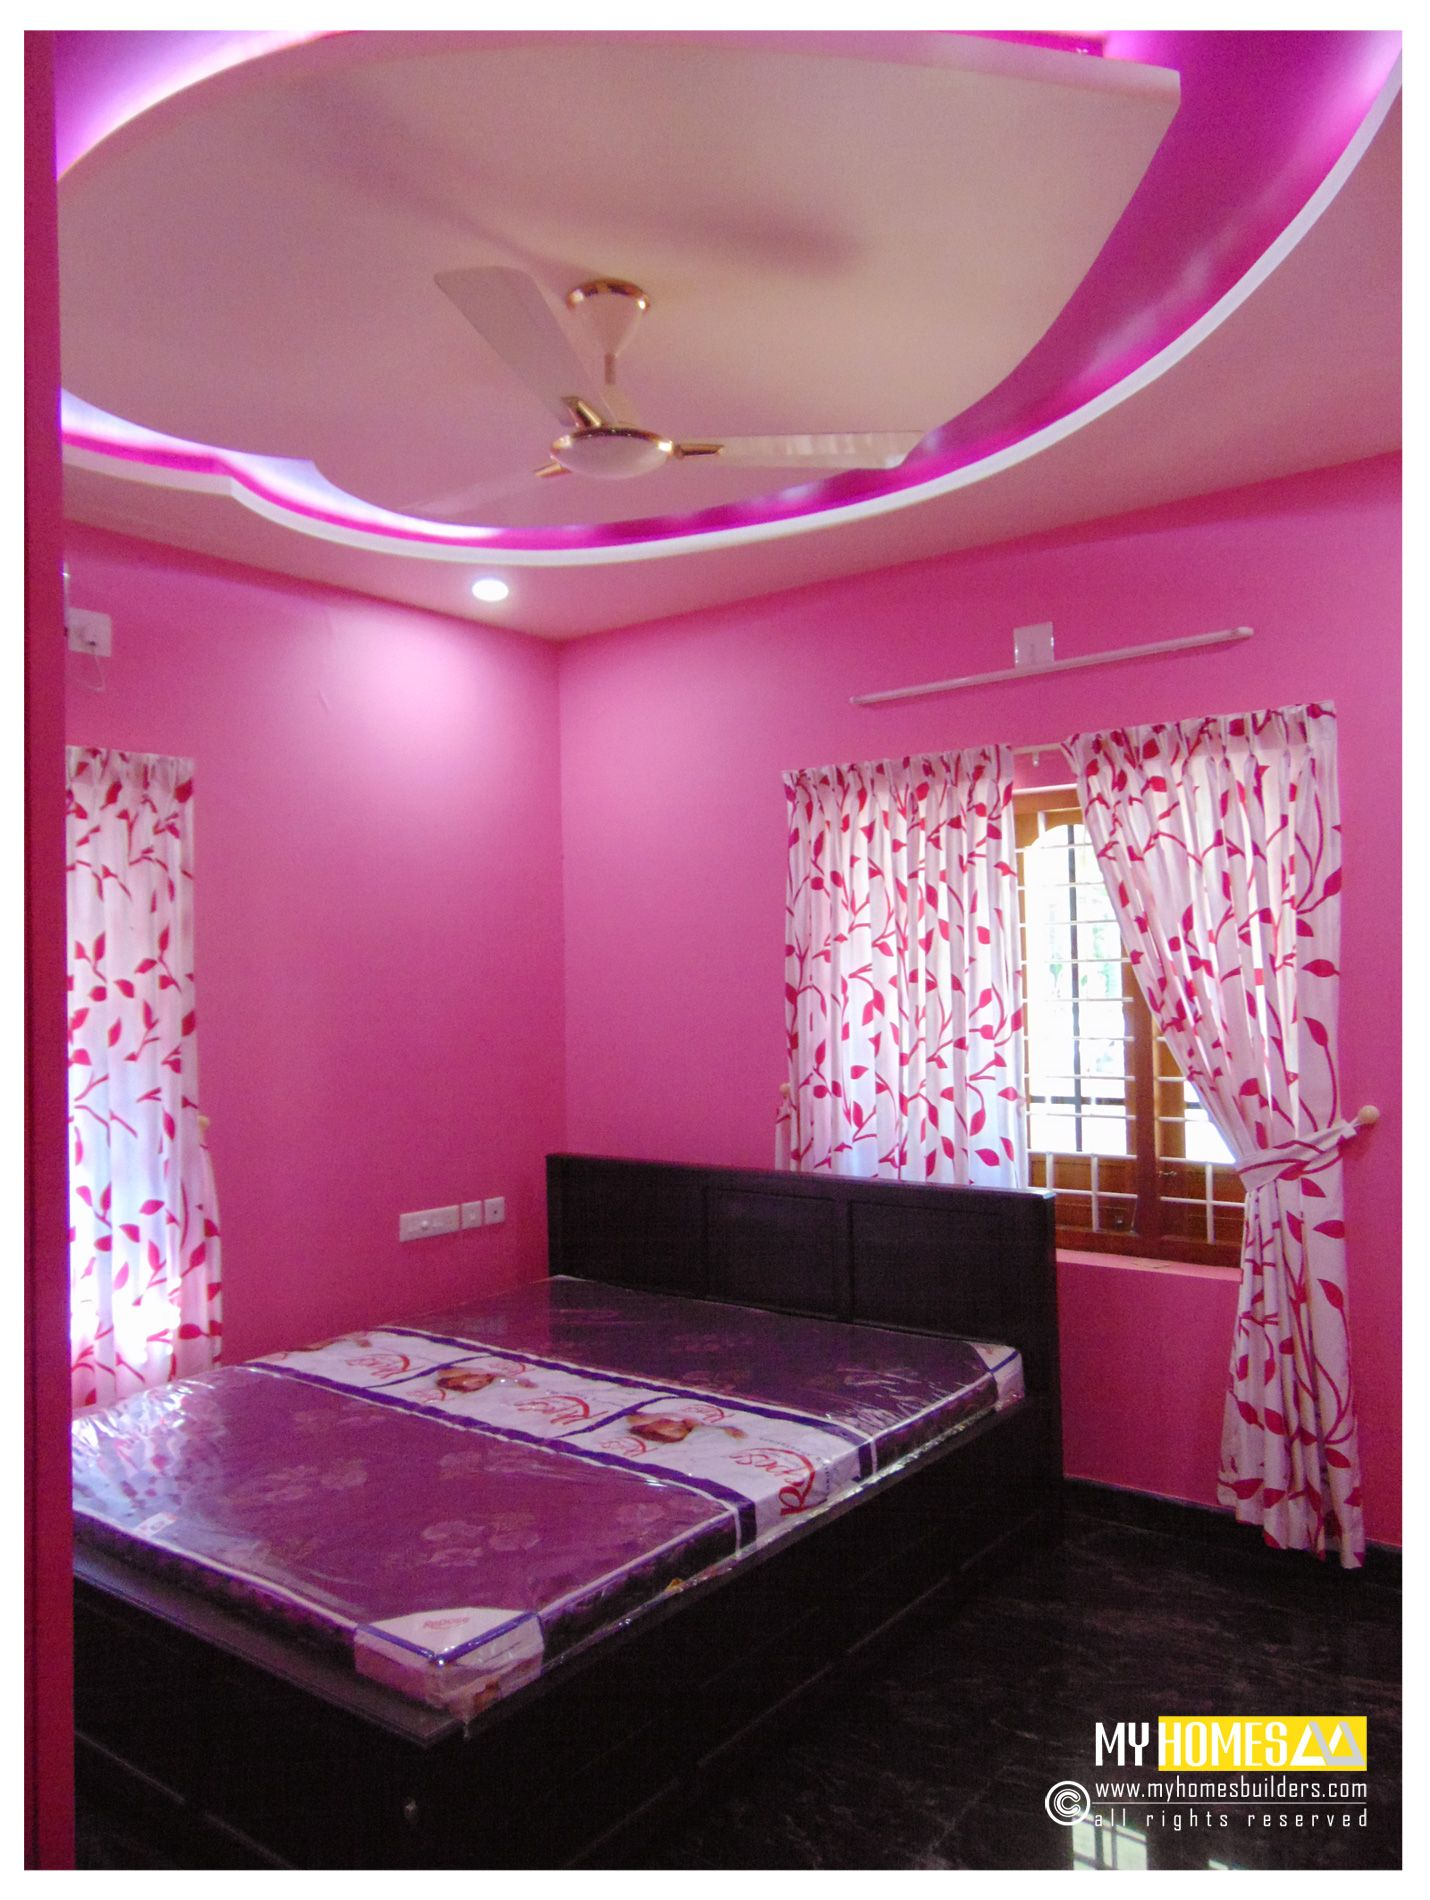 Kerala bedroom interior designs best bed room interior for Kerala house interior painting photos